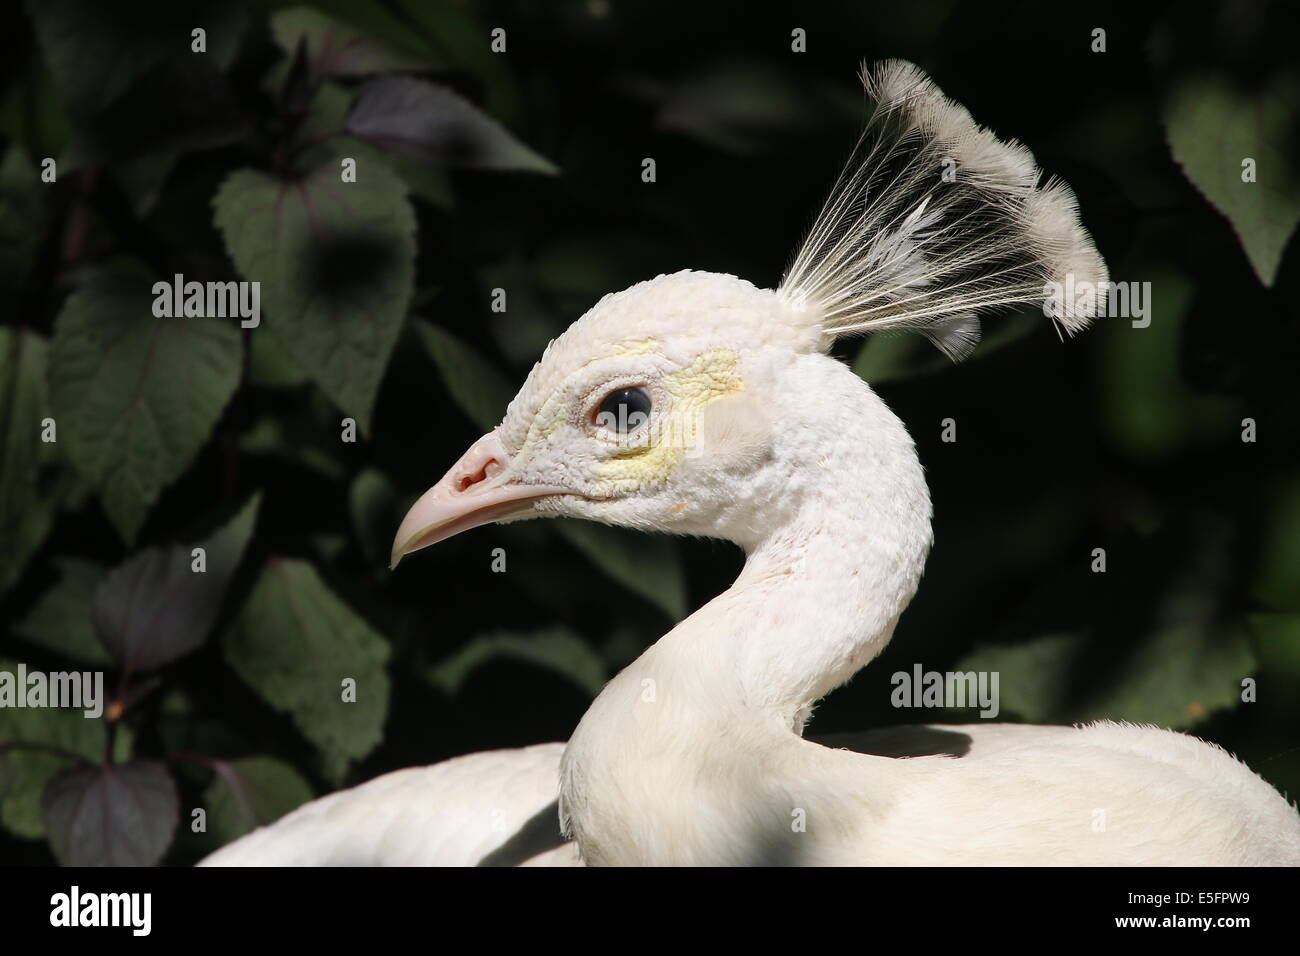 Portrait close-up of  a leucistic or all white variety of the  Blue Peacock  (Pavo cristatus alba) - Stock Image